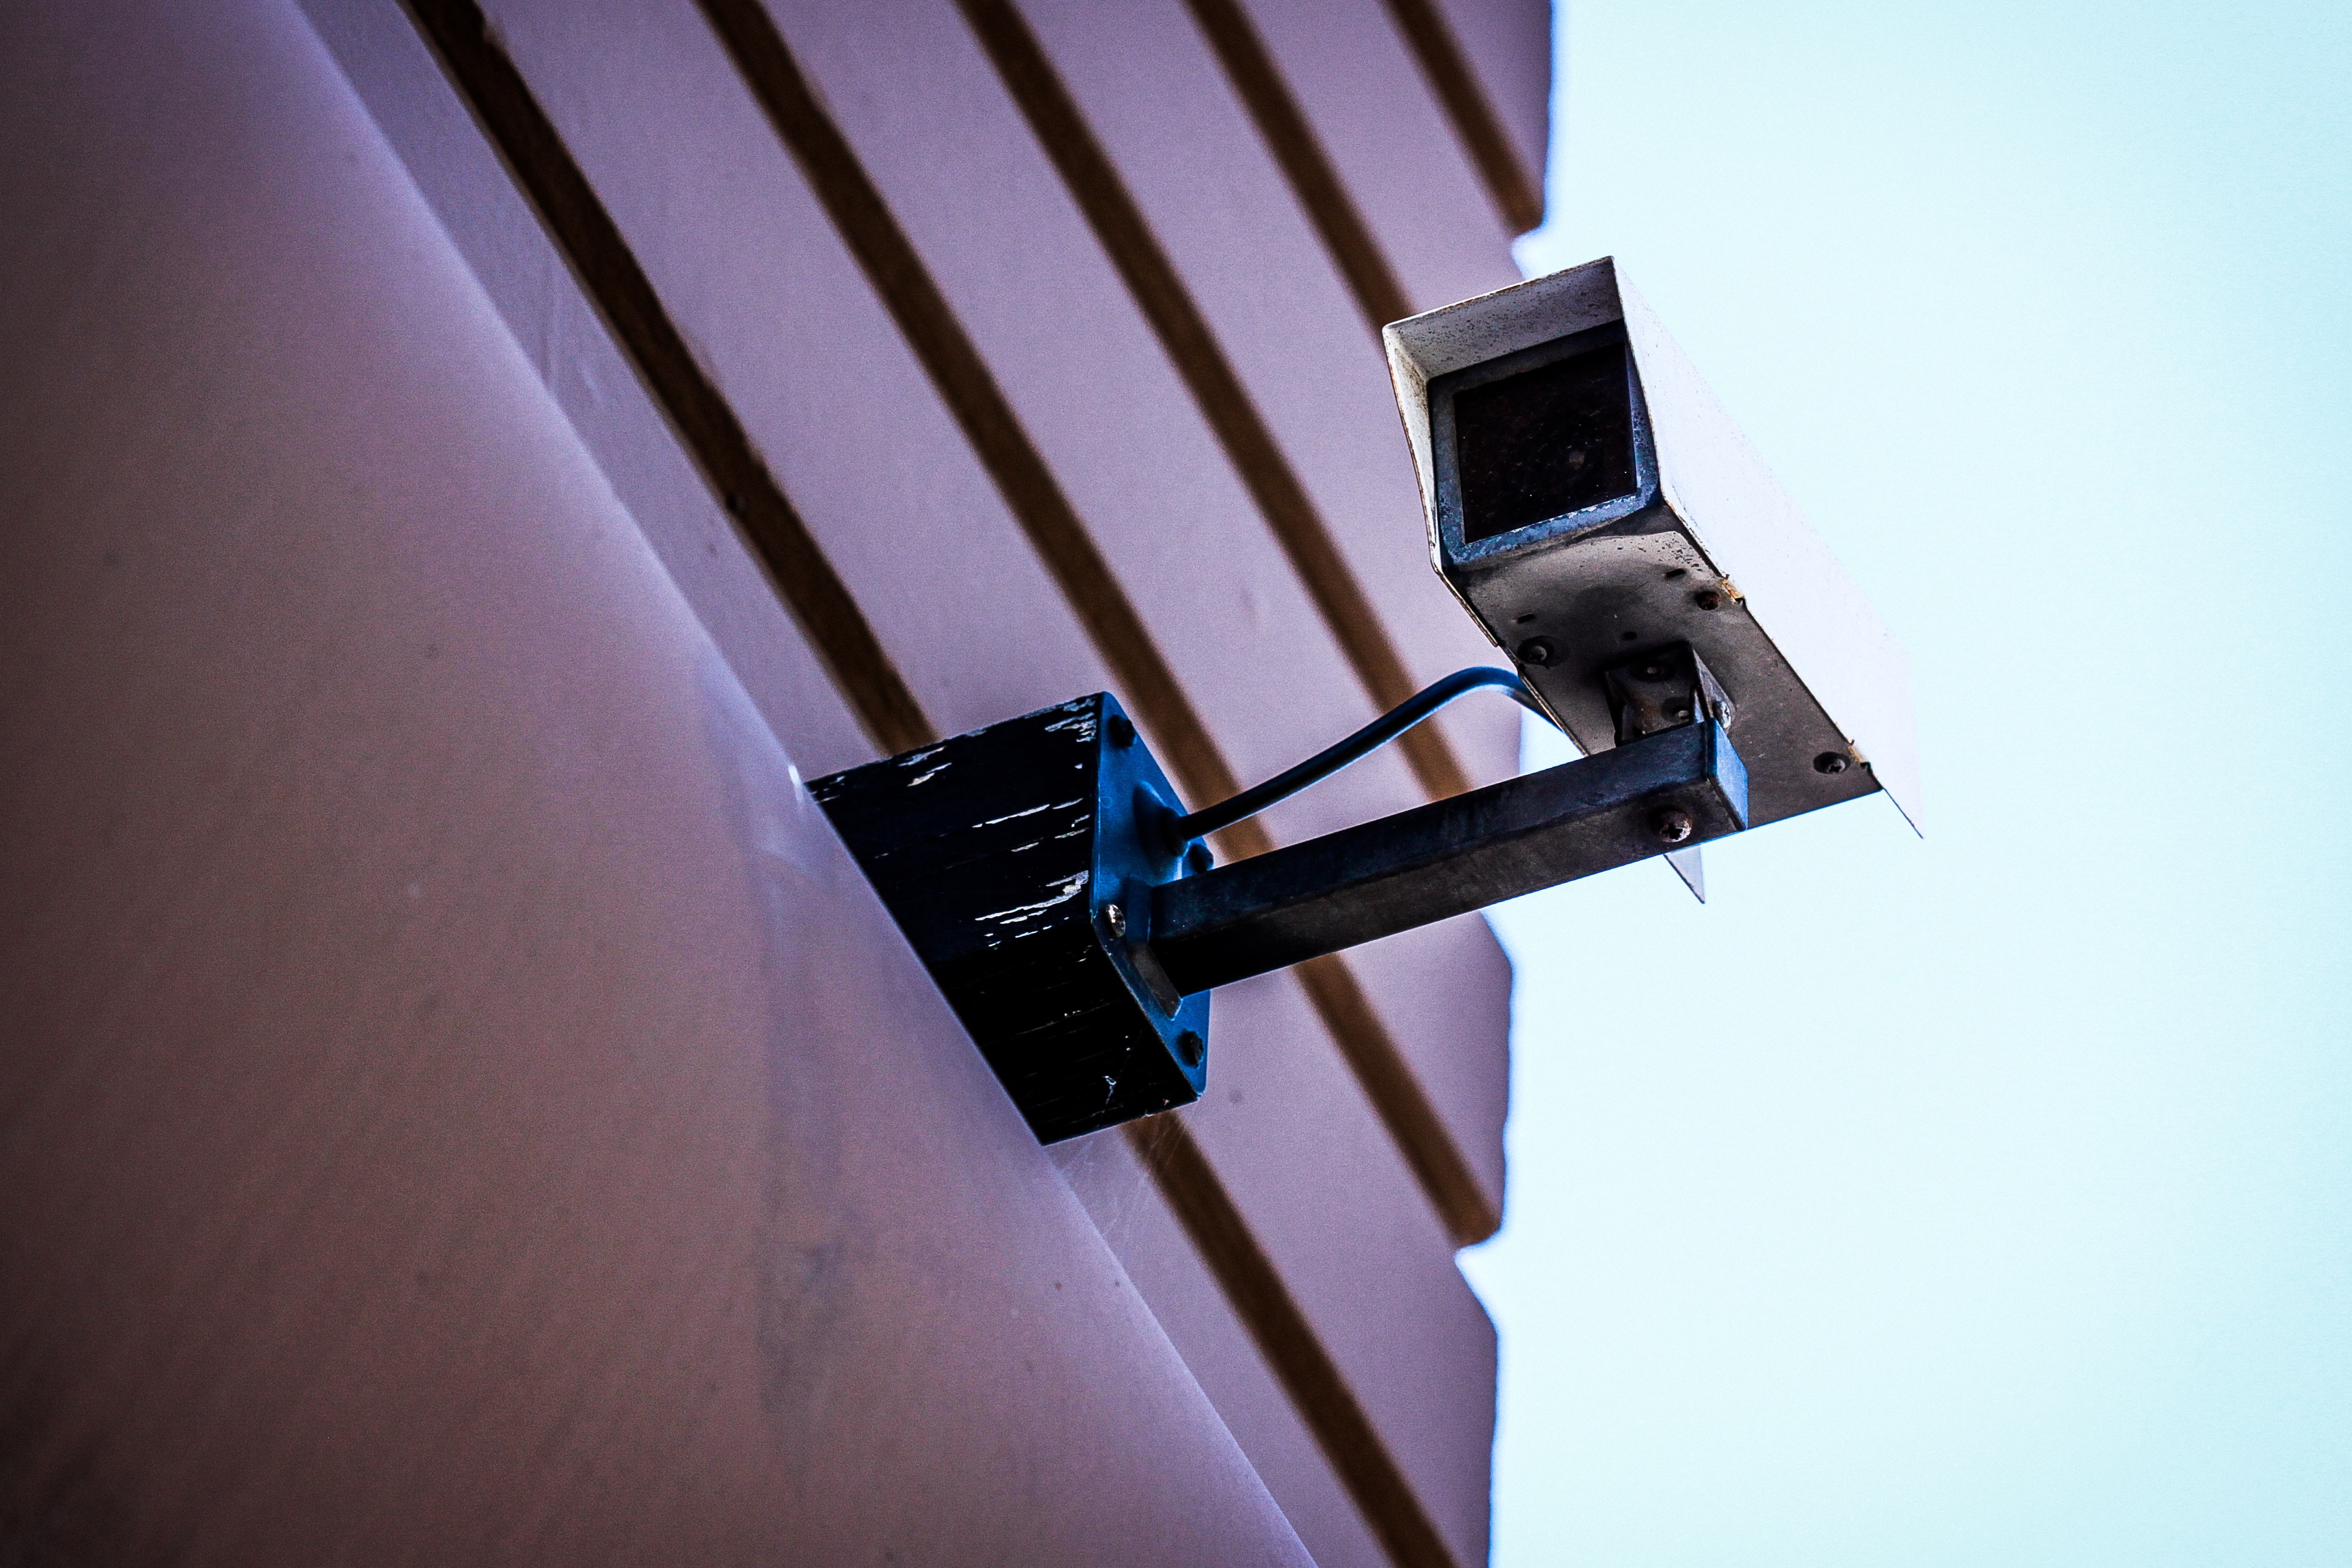 A security camera on a building facade